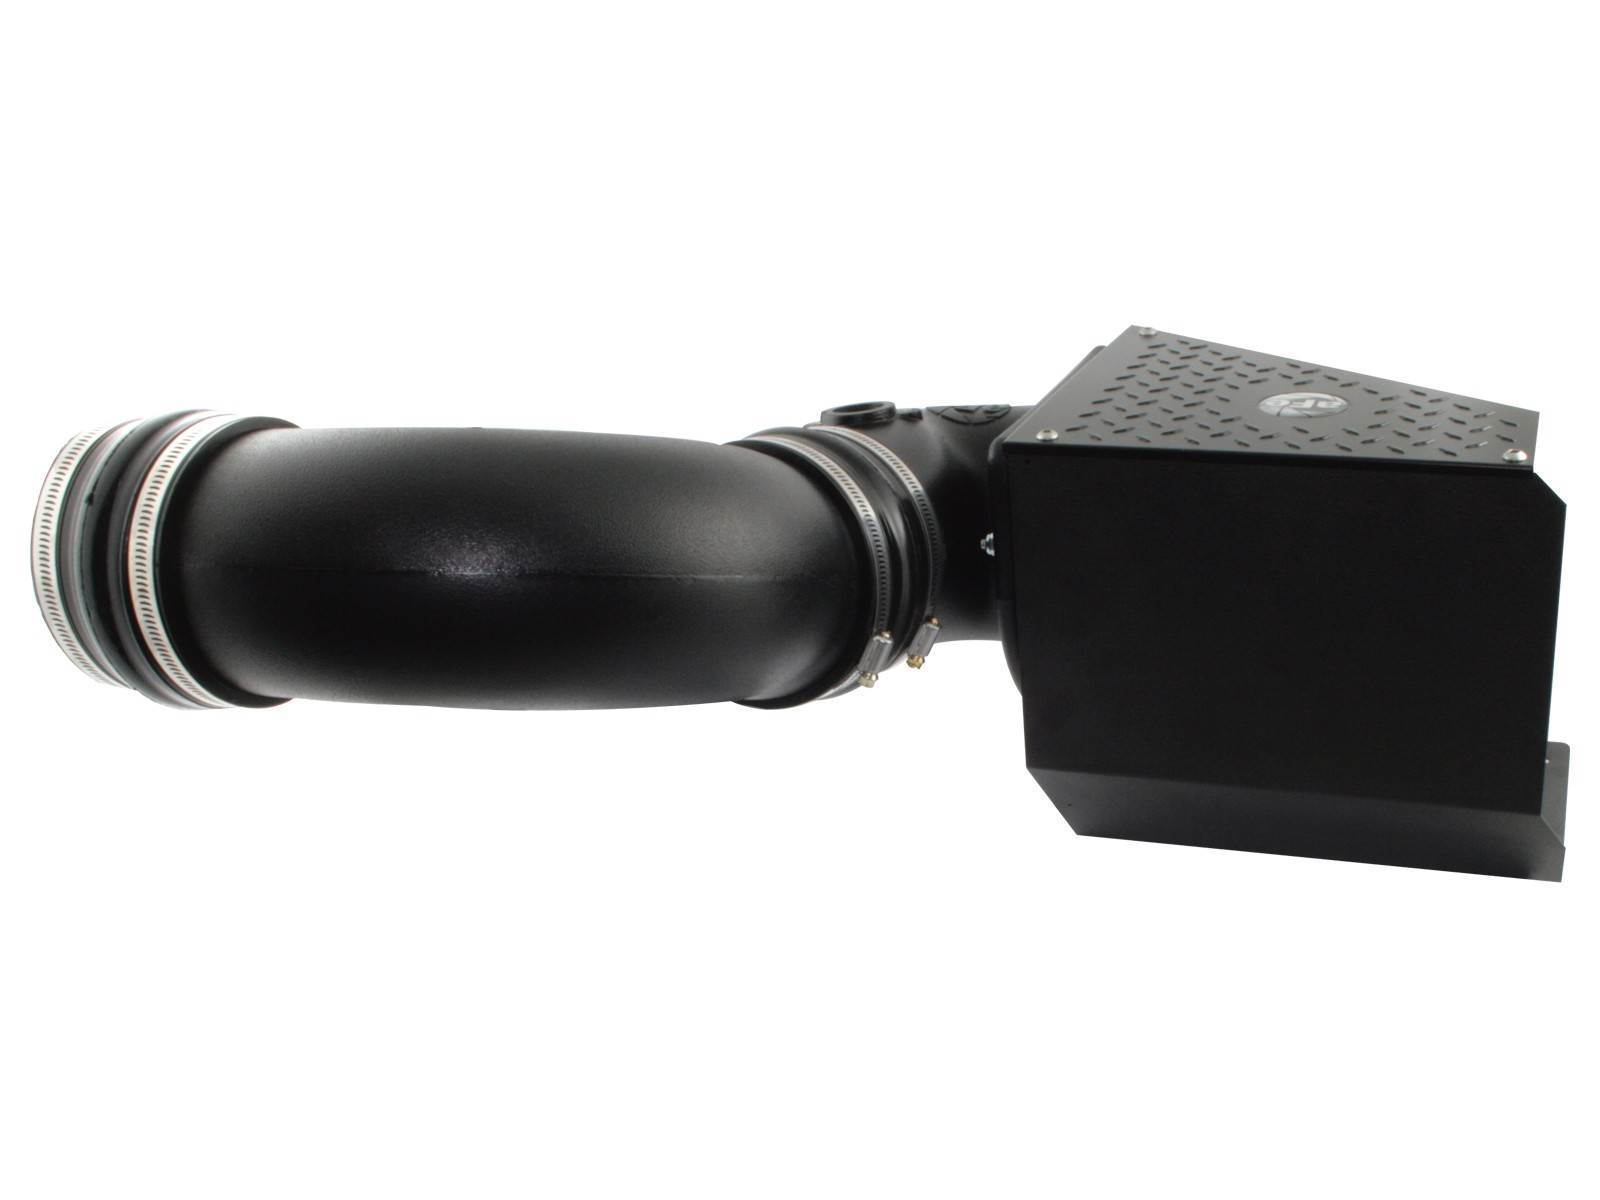 54-10882 - aFE Cold Air Intake System (Pro5R) for 2006-2007 GMC/Chevy Duramax LBZ diesel trucks.